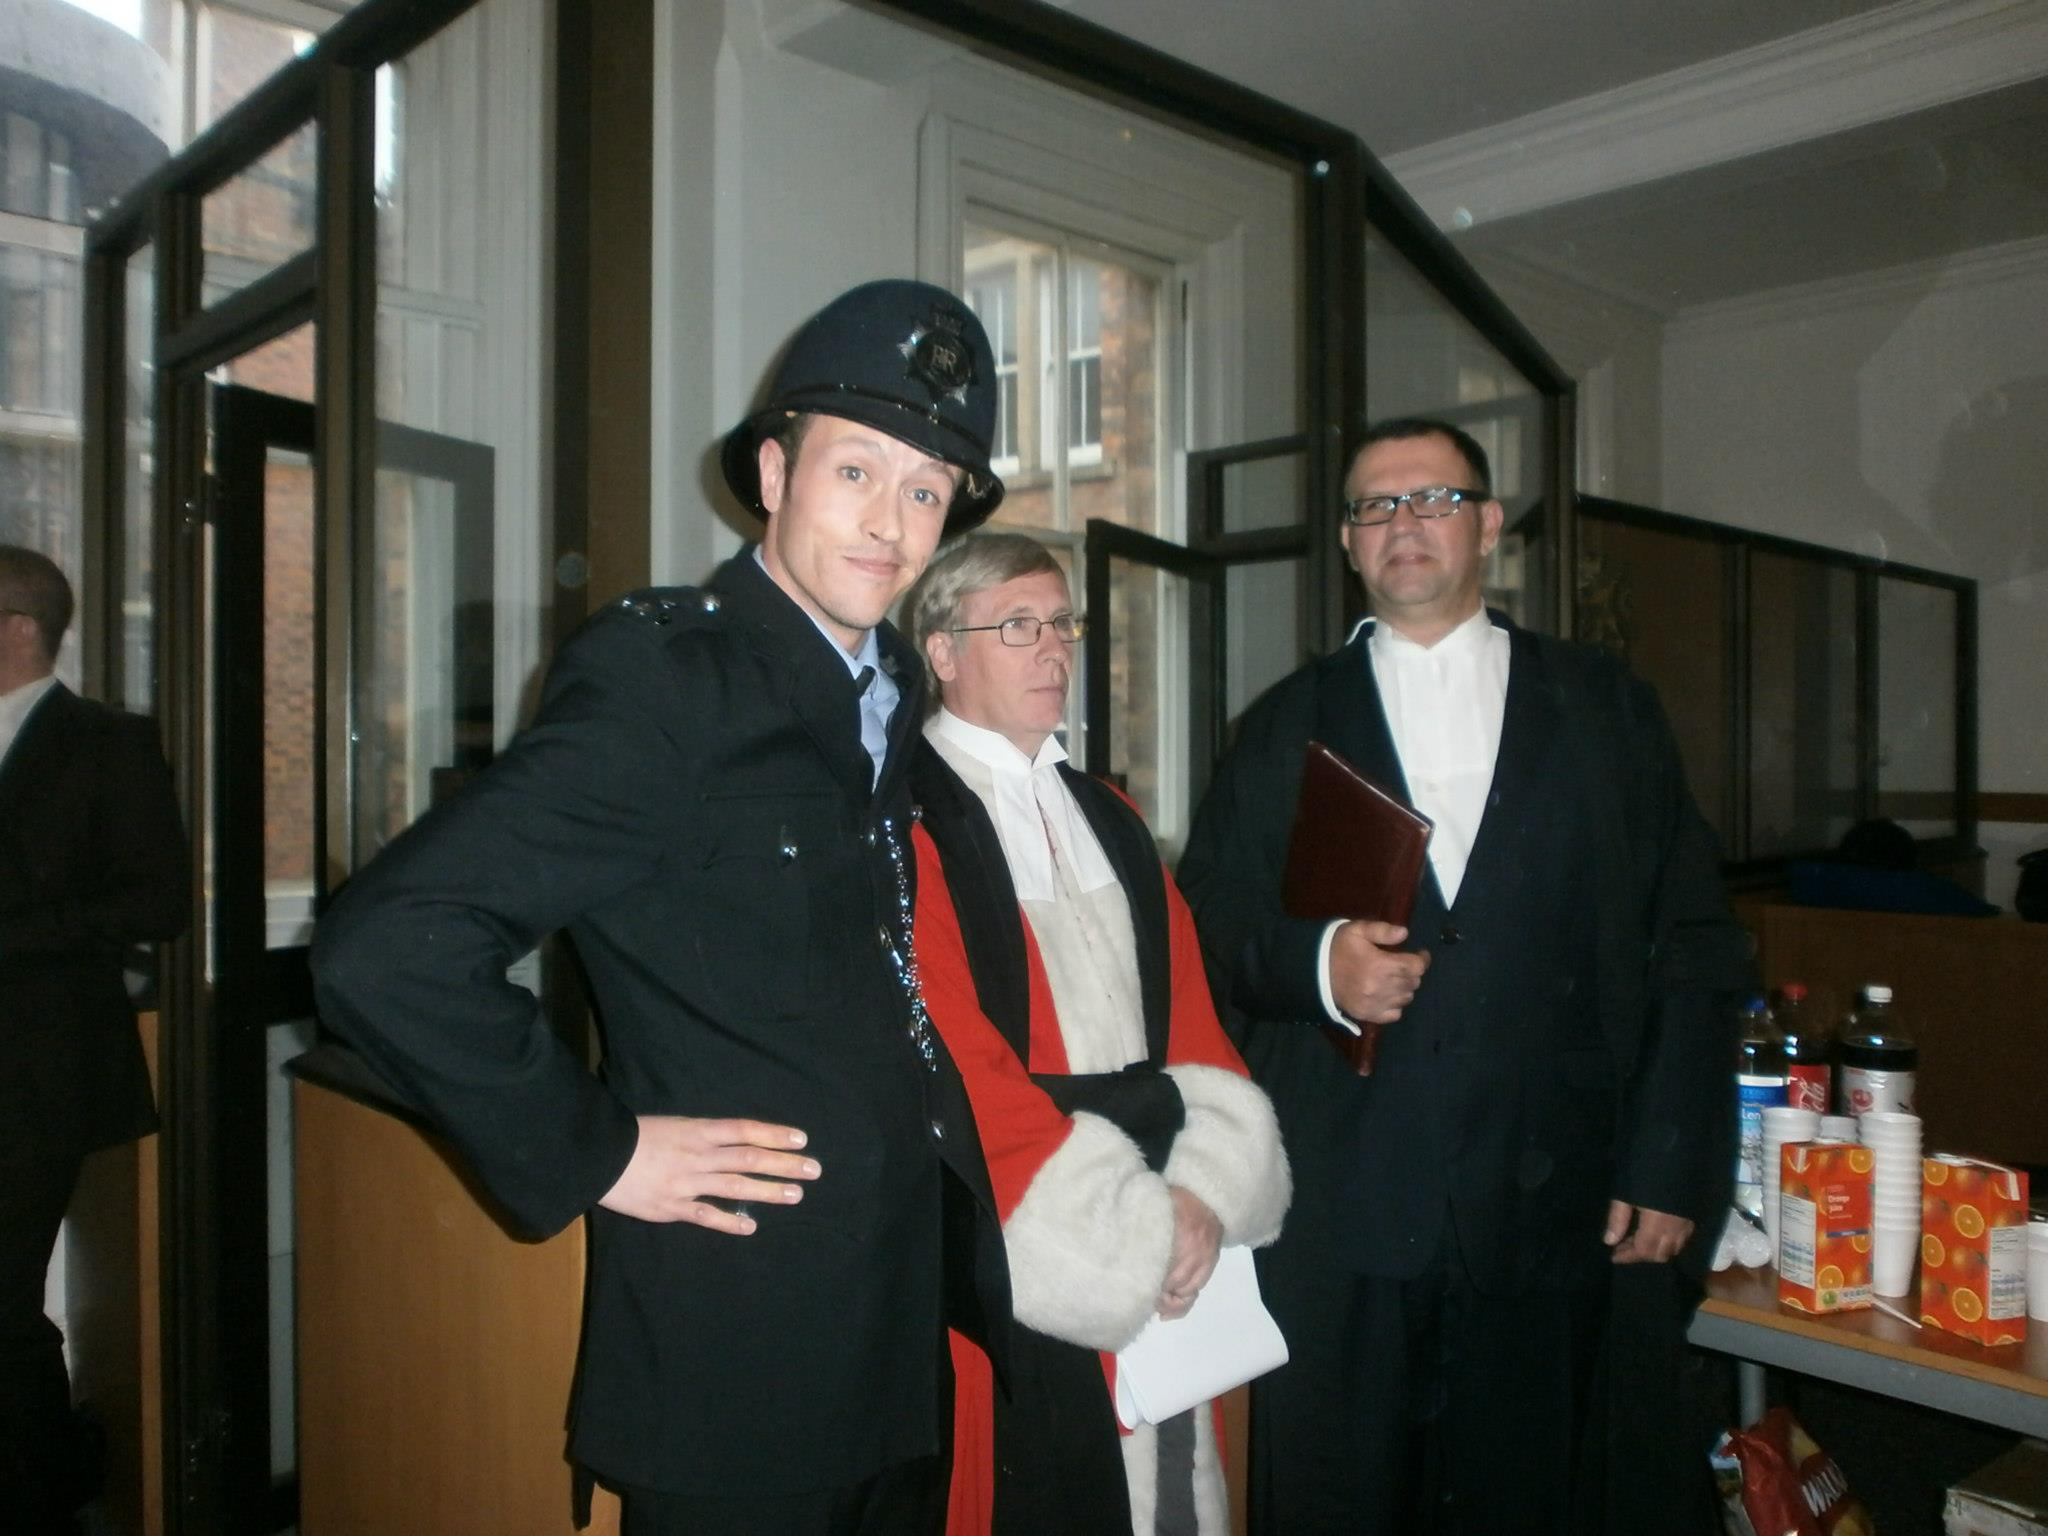 Jason_Judge_and_Defence_Barrister